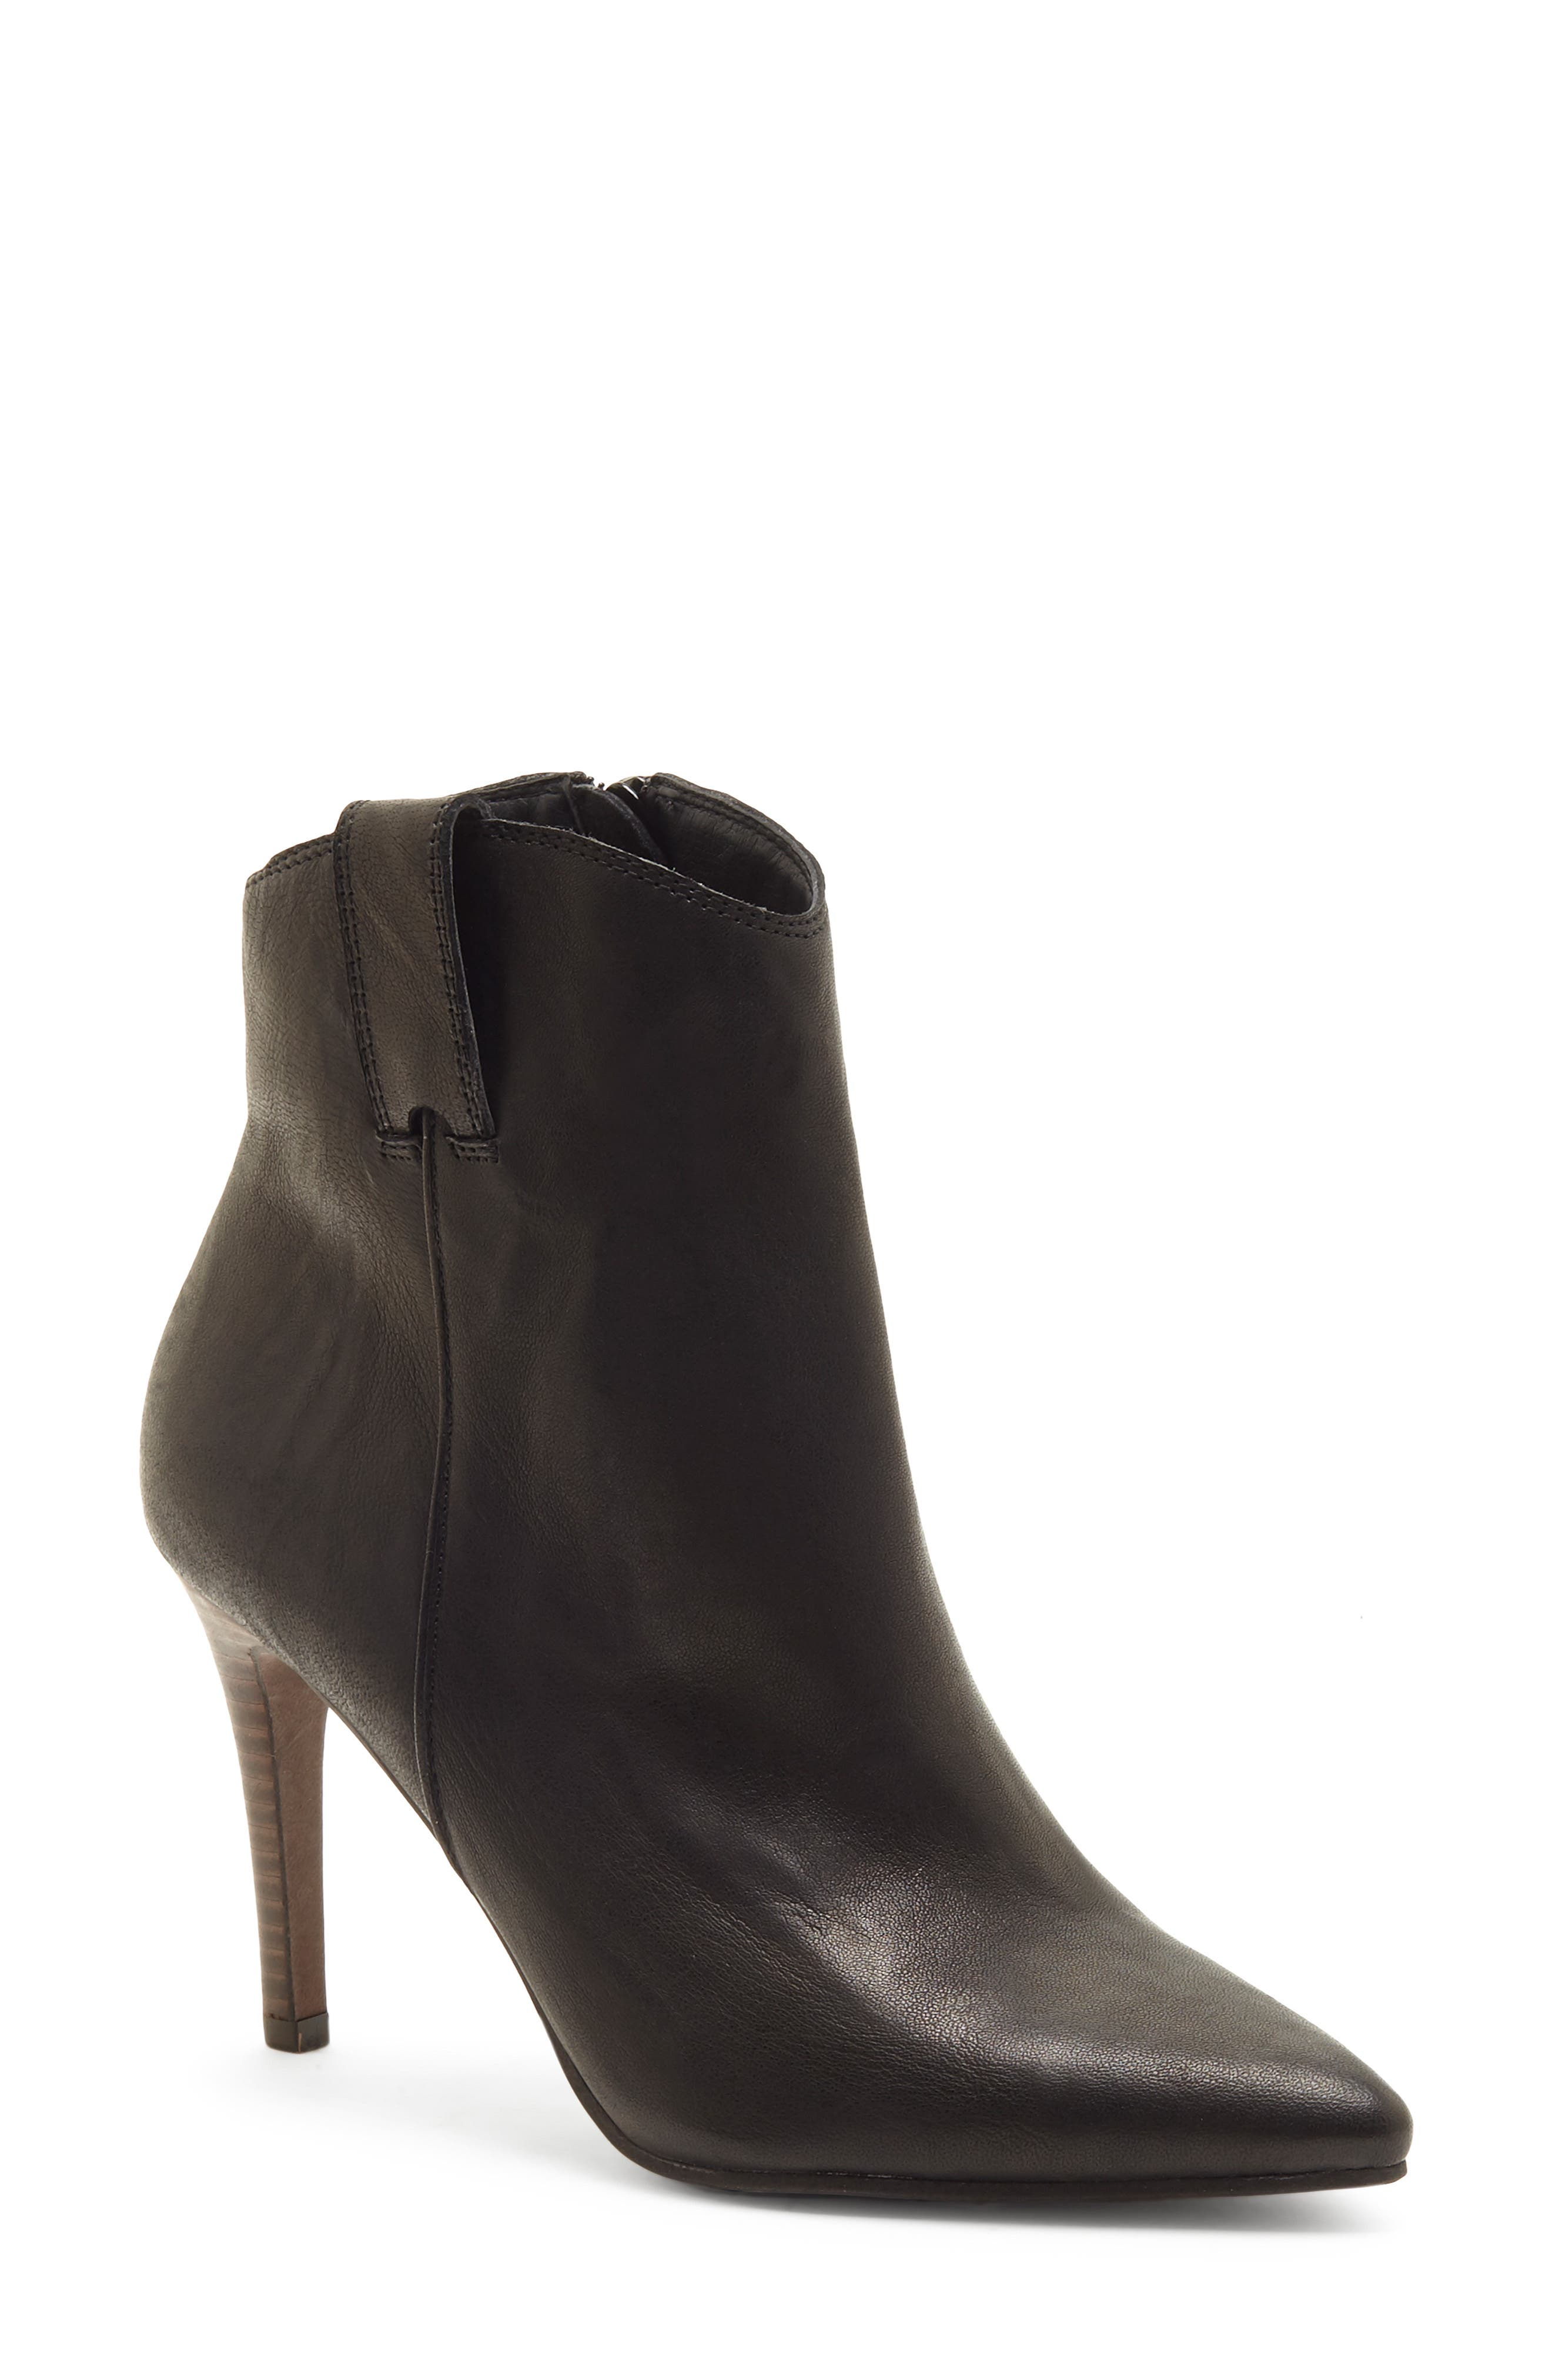 LUCKY BRAND Torince Bootie, Main, color, 200